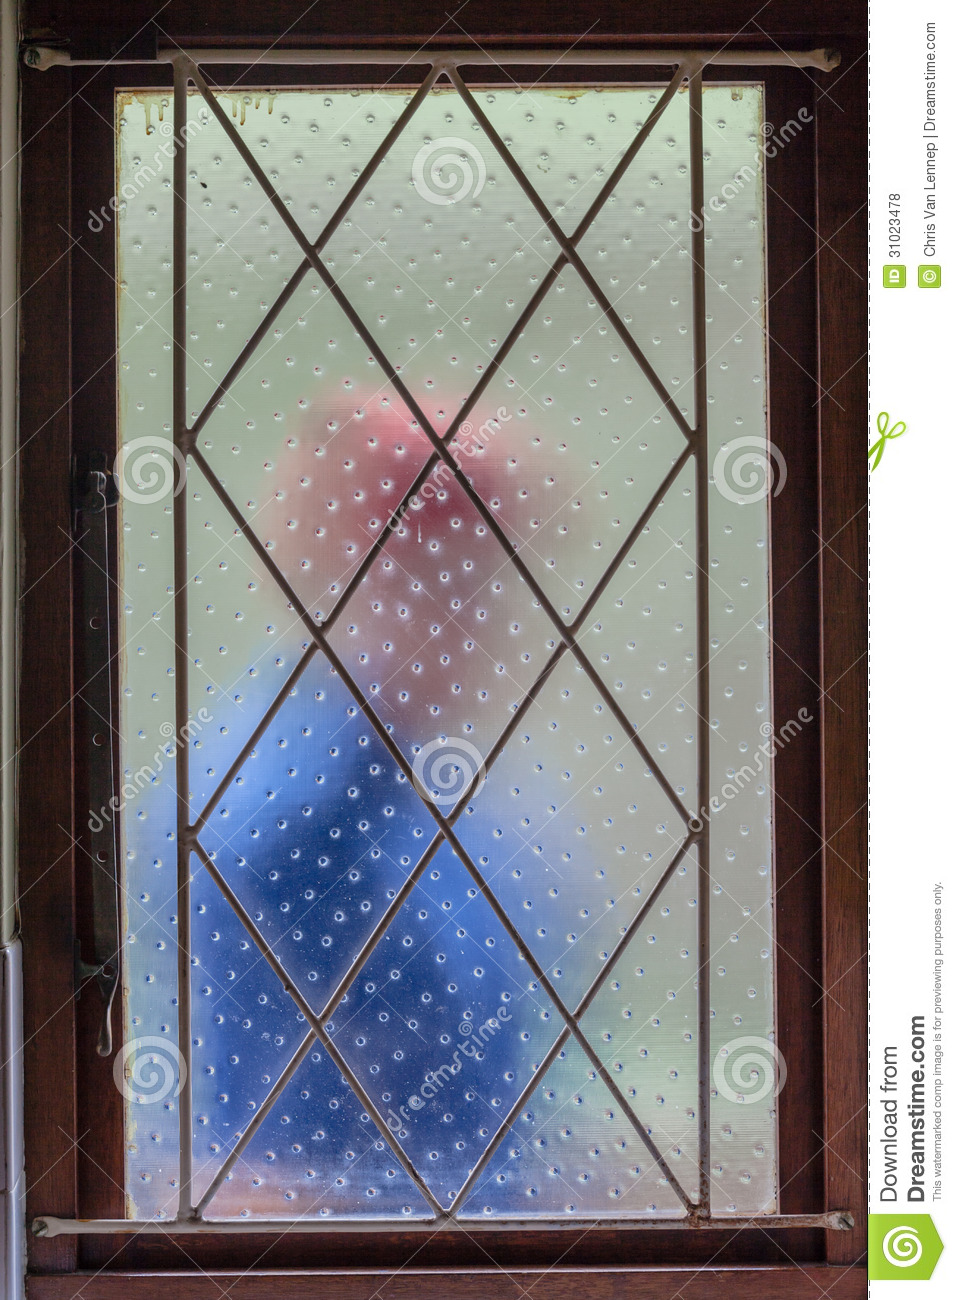 House burglar intruder window bars stock photo image for Modern glass window design